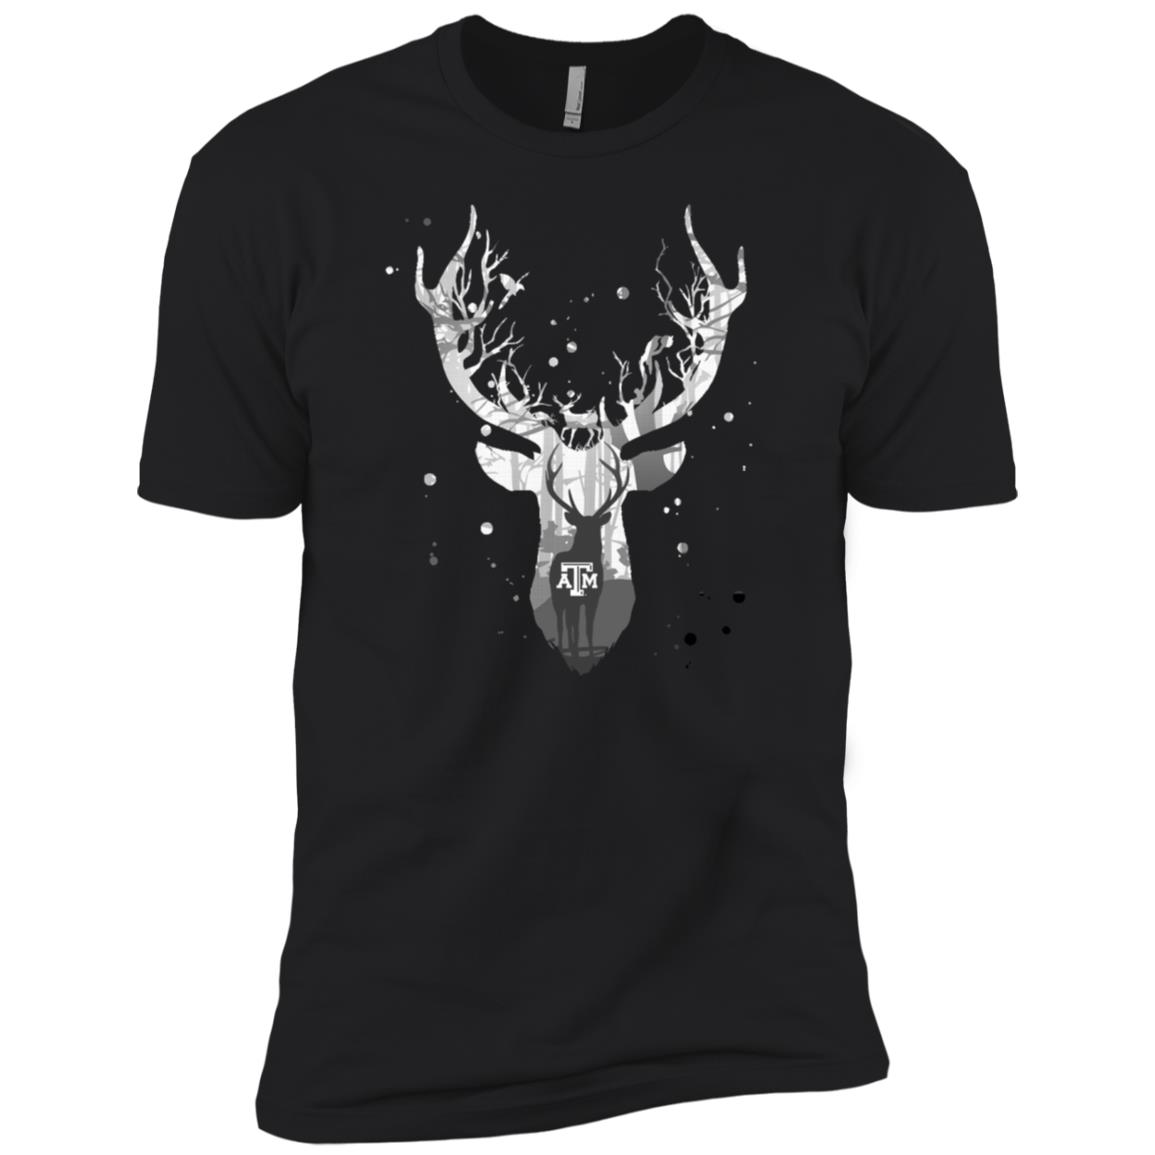 Texas A&m Aggies Hunting – Deer Inside Men Short Sleeve T-Shirt